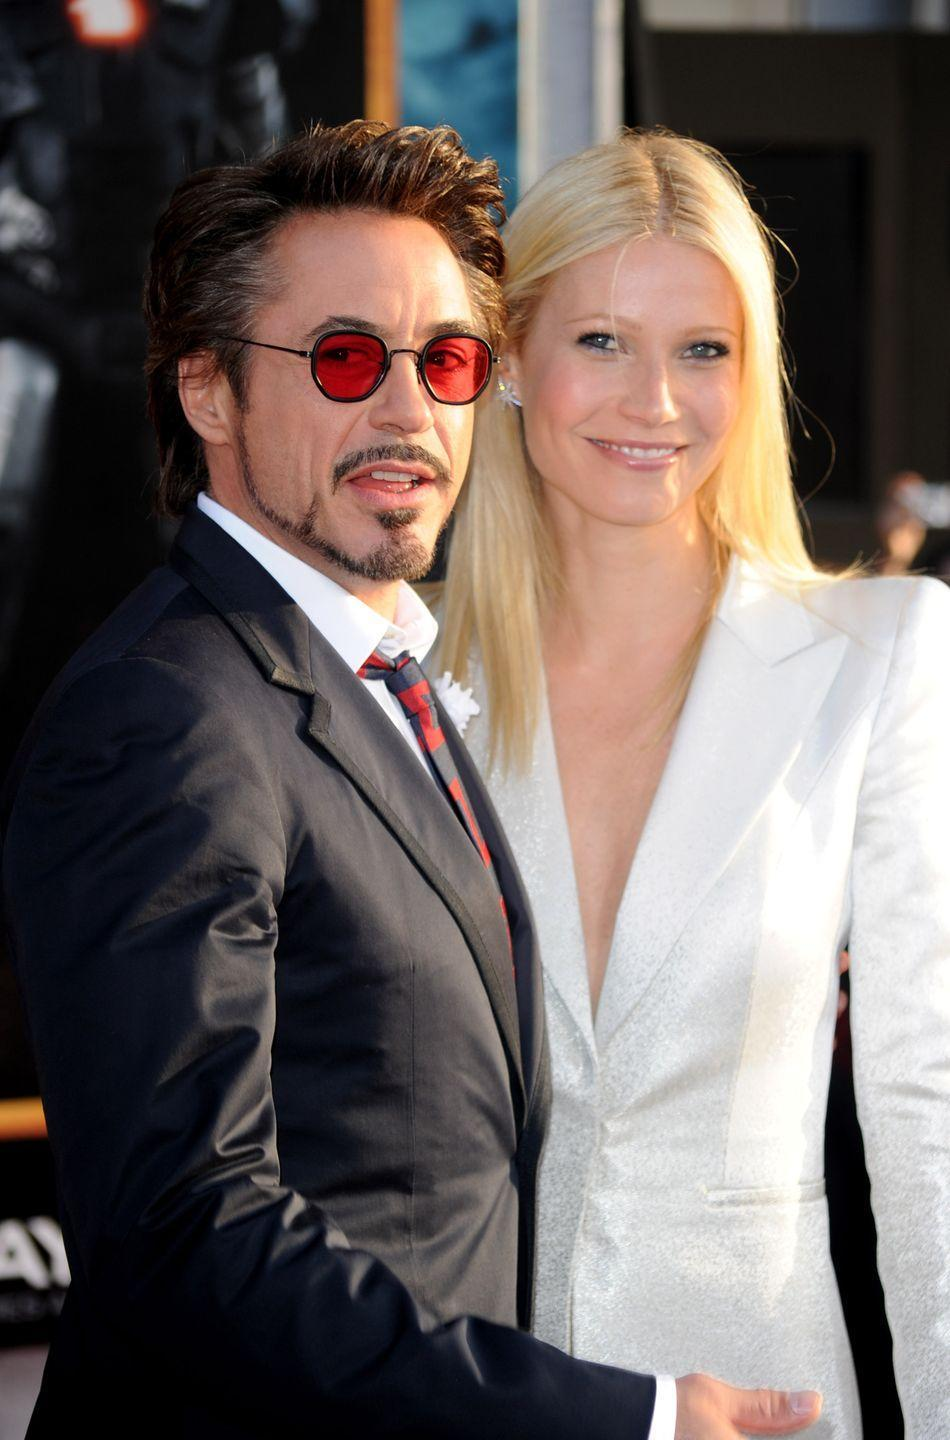 "<p>In the same <a href=""https://www.marieclaire.com/celebrity/a34380451/kate-hudson-gwyneth-paltrow-worst-on-screen-kisses/"" rel=""nofollow noopener"" target=""_blank"" data-ylk=""slk:podcast episode"" class=""link rapid-noclick-resp"">podcast episode</a>, Gwyneth Paltrow revealed kissing Robert Downey Jr. in the <em>Iron Man</em> and <em>Avengers</em> movies felt like kissing a brother. ""Like with Robert, like when I kissed him and I was like, 'You've got to be kidding me,'"" said Paltrow. ""This is literally like kissing my brother.""</p>"